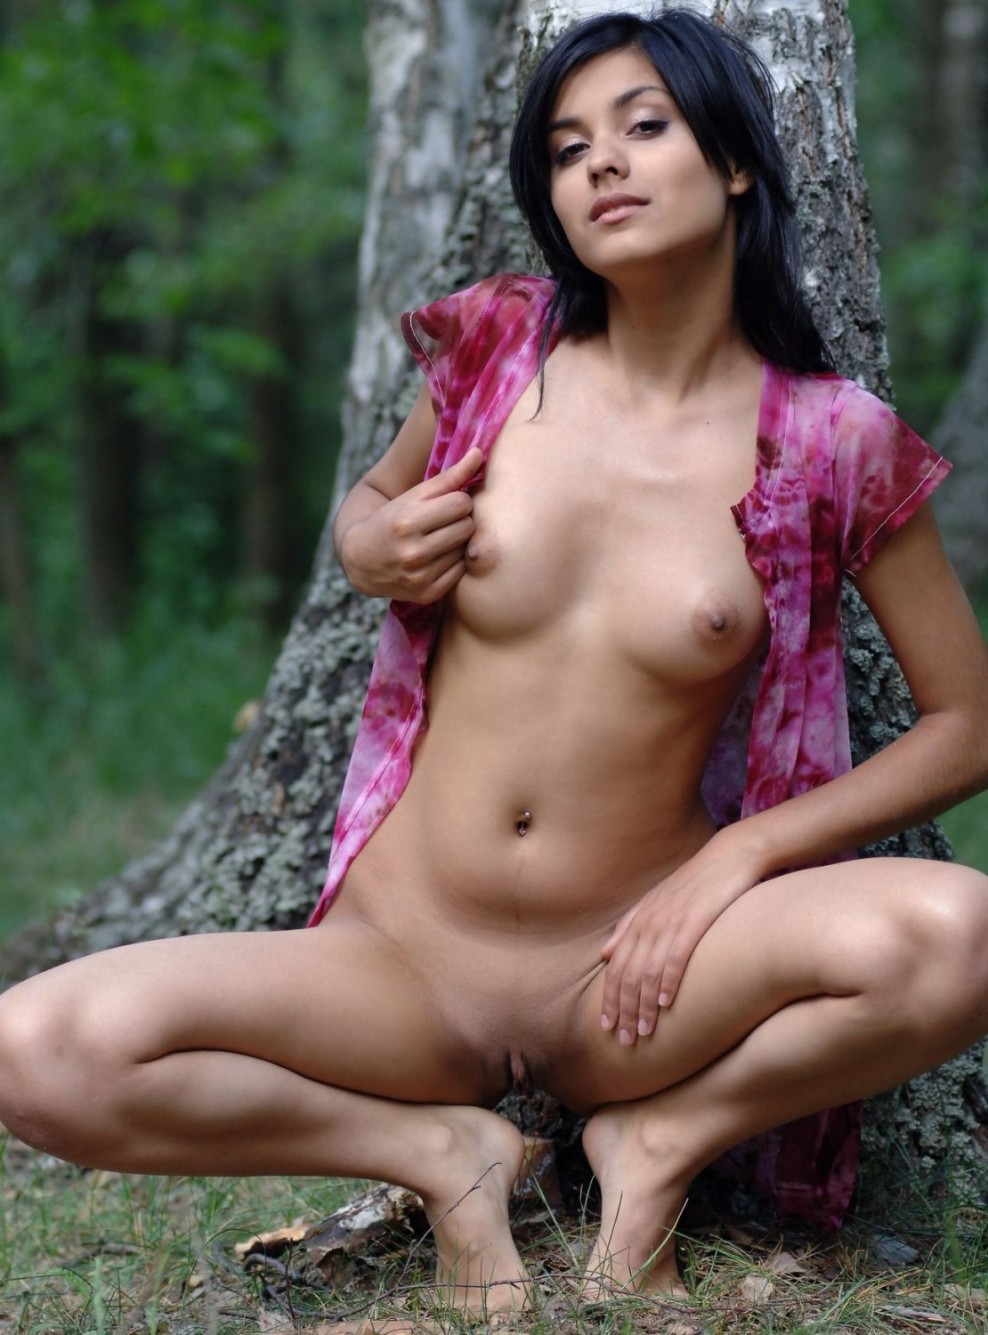 Potos girals sex Pakistan nude